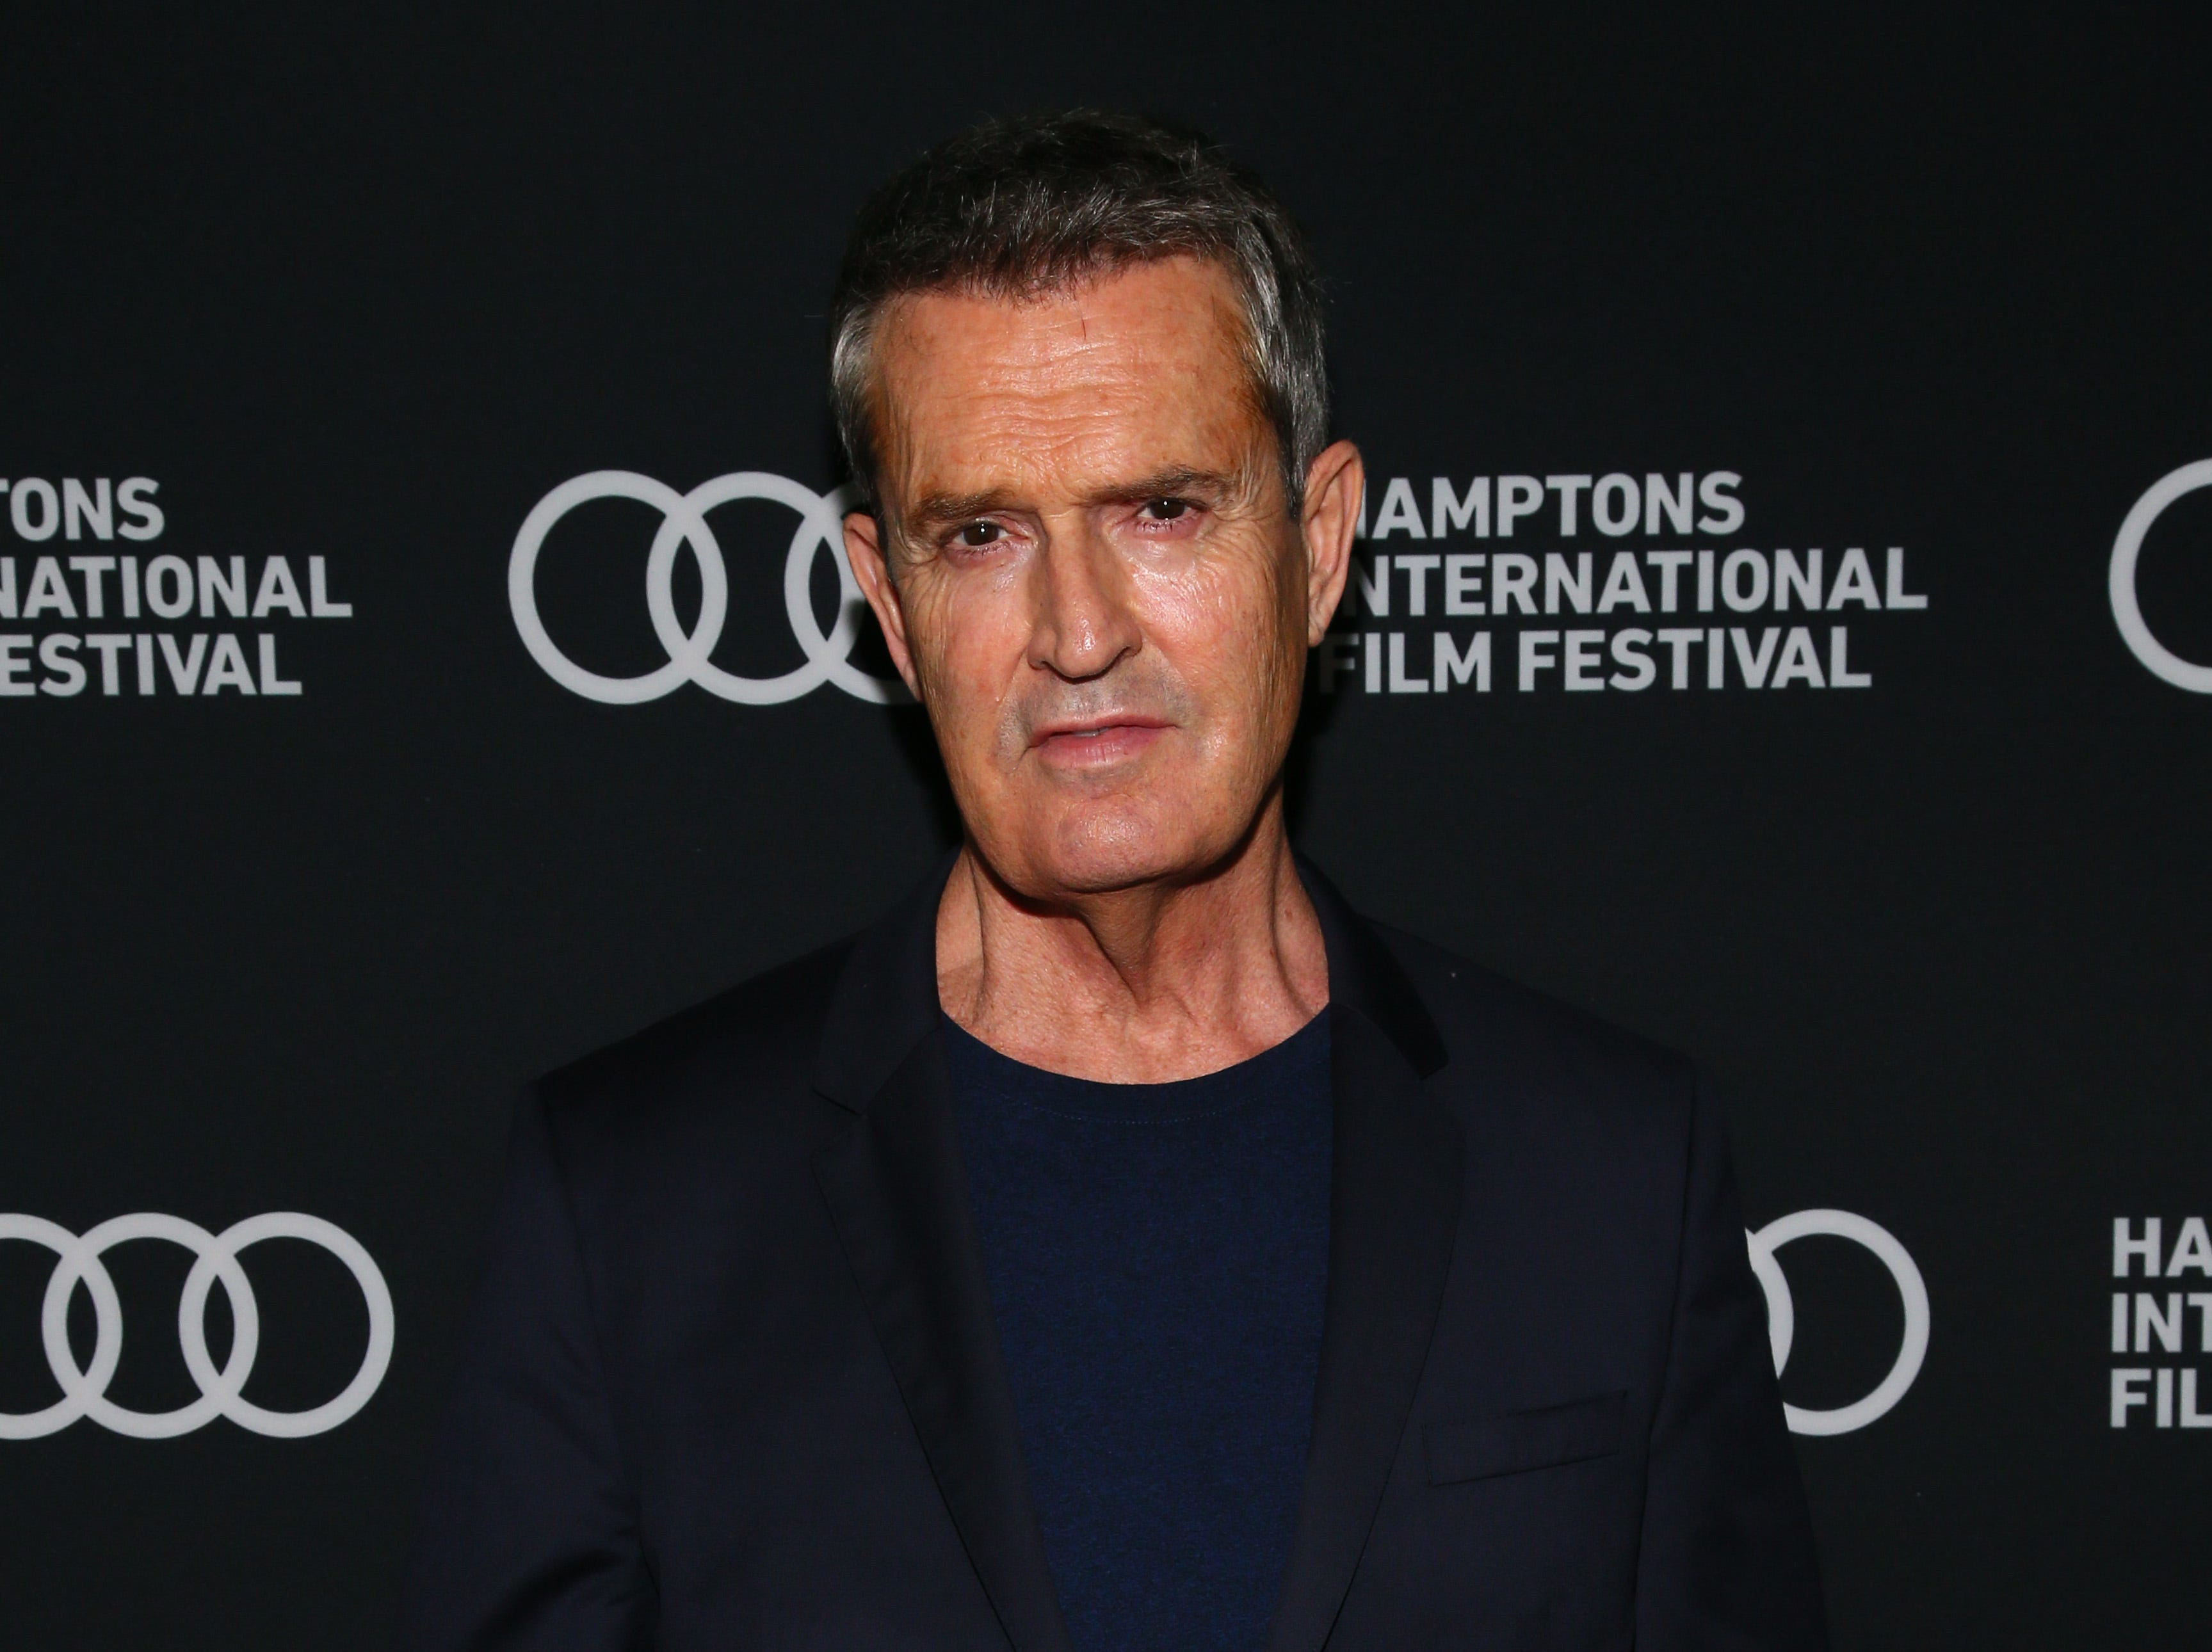 Actor and filmmaker Rupert Everett attends the Hamptons International Film Festival 2018 - Day Four on October 7, 2018 in East Hampton, New York.